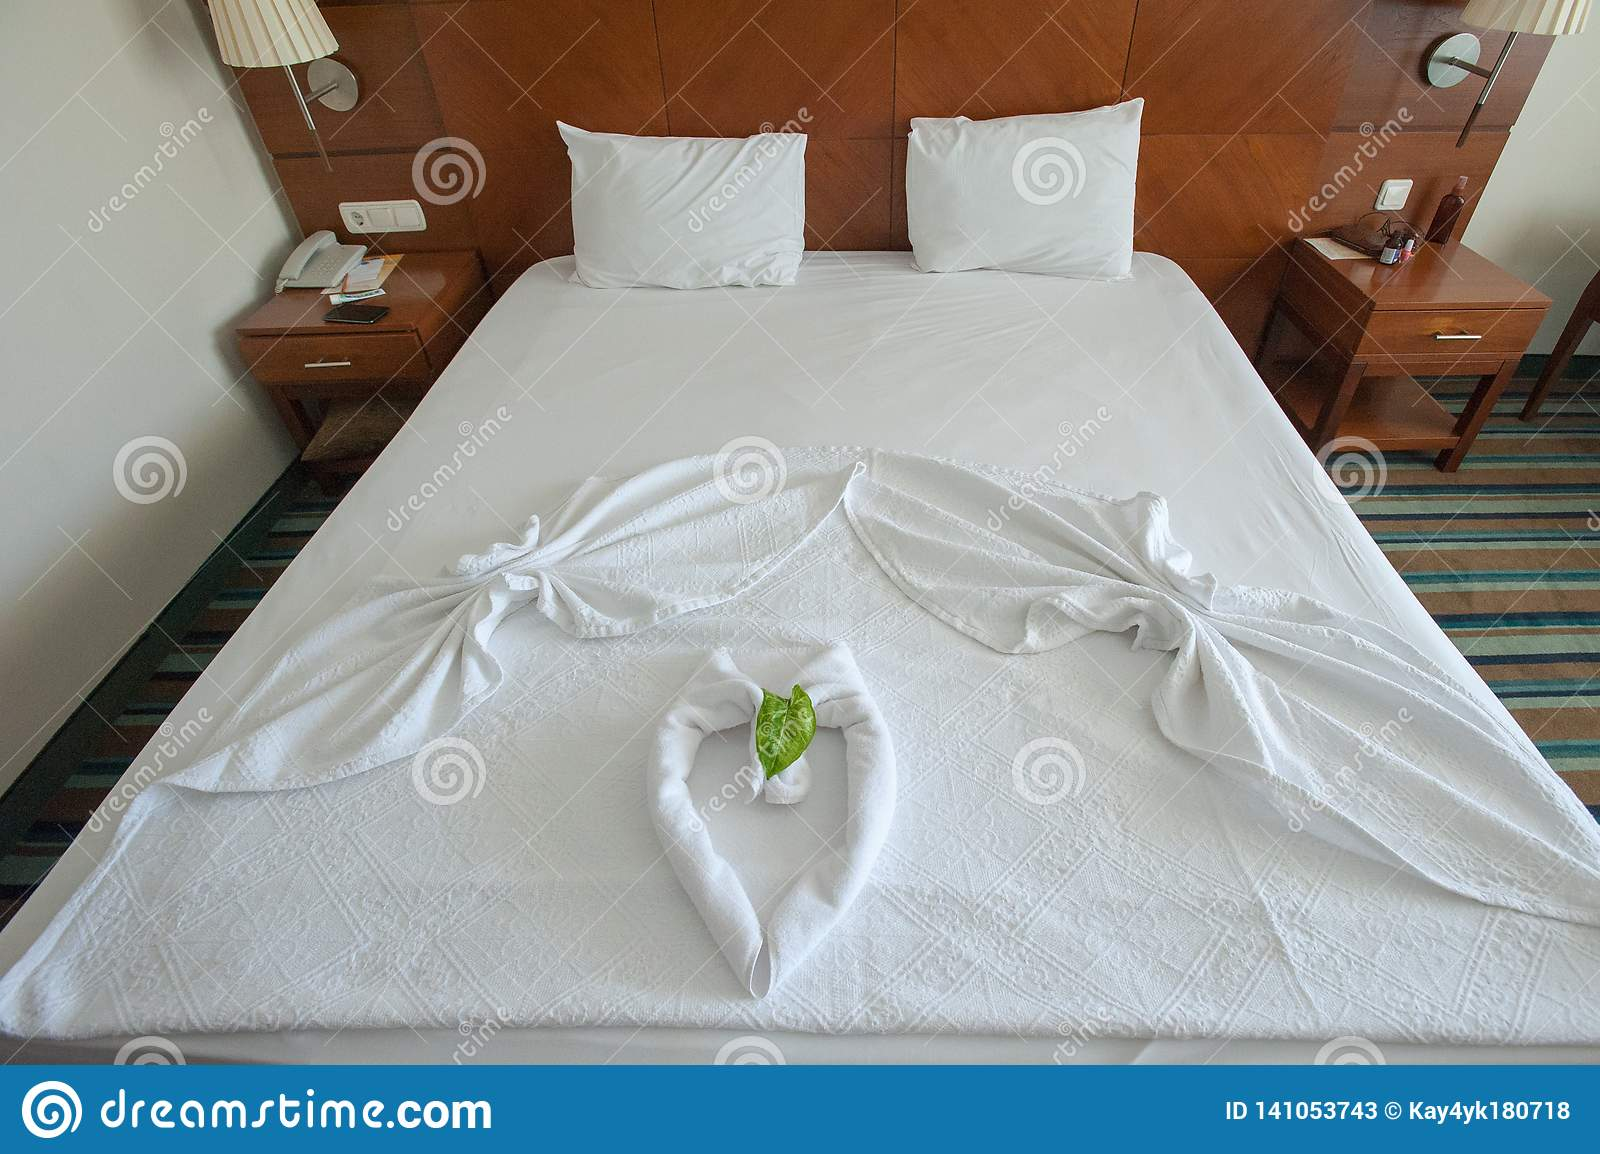 Decorated bed with towels and heart-shaped covers